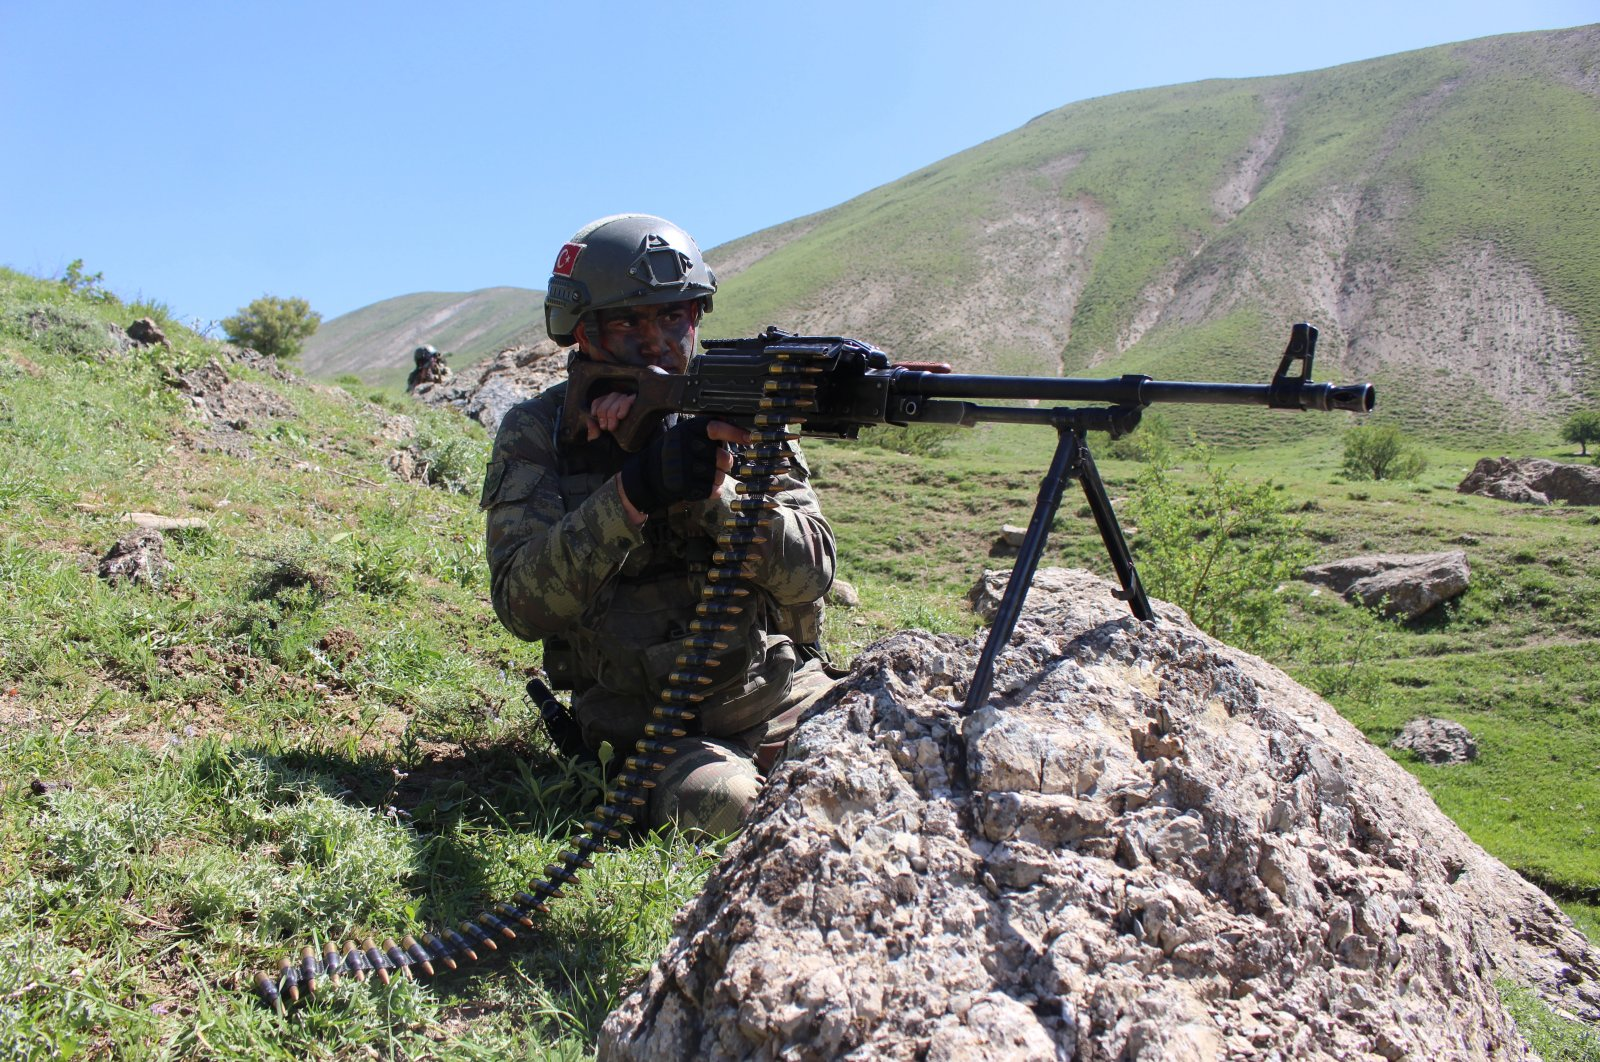 Gendarmerie forces conduct anti-terrorism operations in a rural area of Turkey's southeastern Hakkari province, Aug. 6, 2017. (AA Photo)